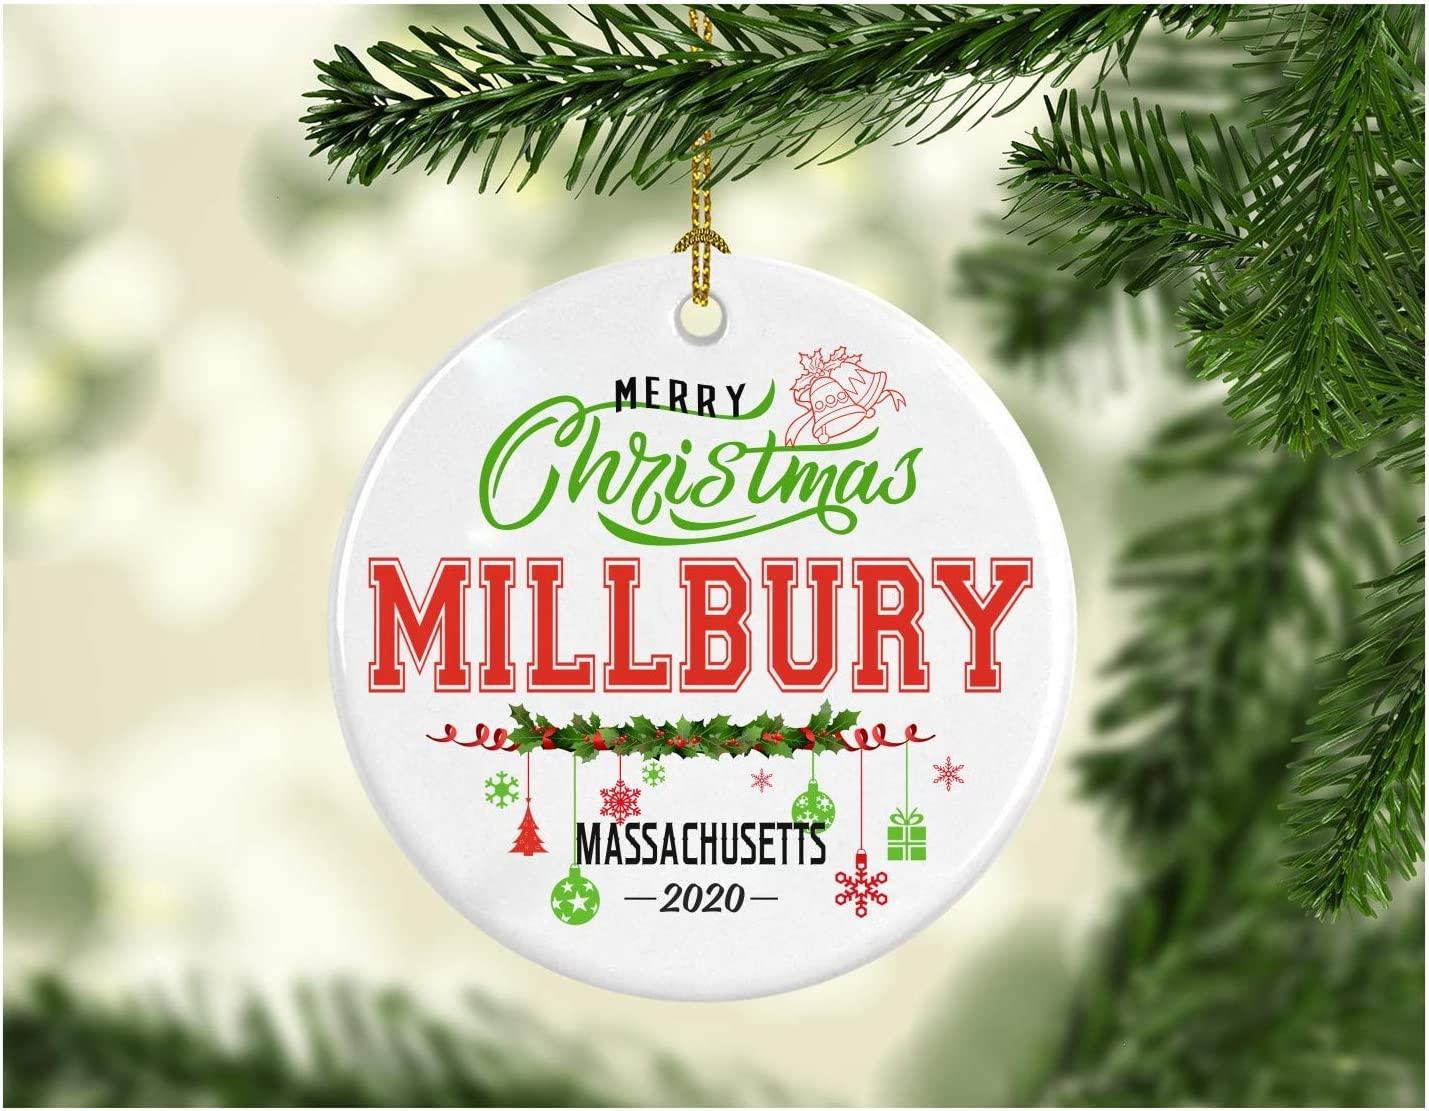 Christmas Decorations Tree Ornament - Gifts Hometown State - Merry Christmas Millbury Massachusetts 2020 - Gift for Family Rustic 1St Xmas Tree in Our New Home 3 Inches White